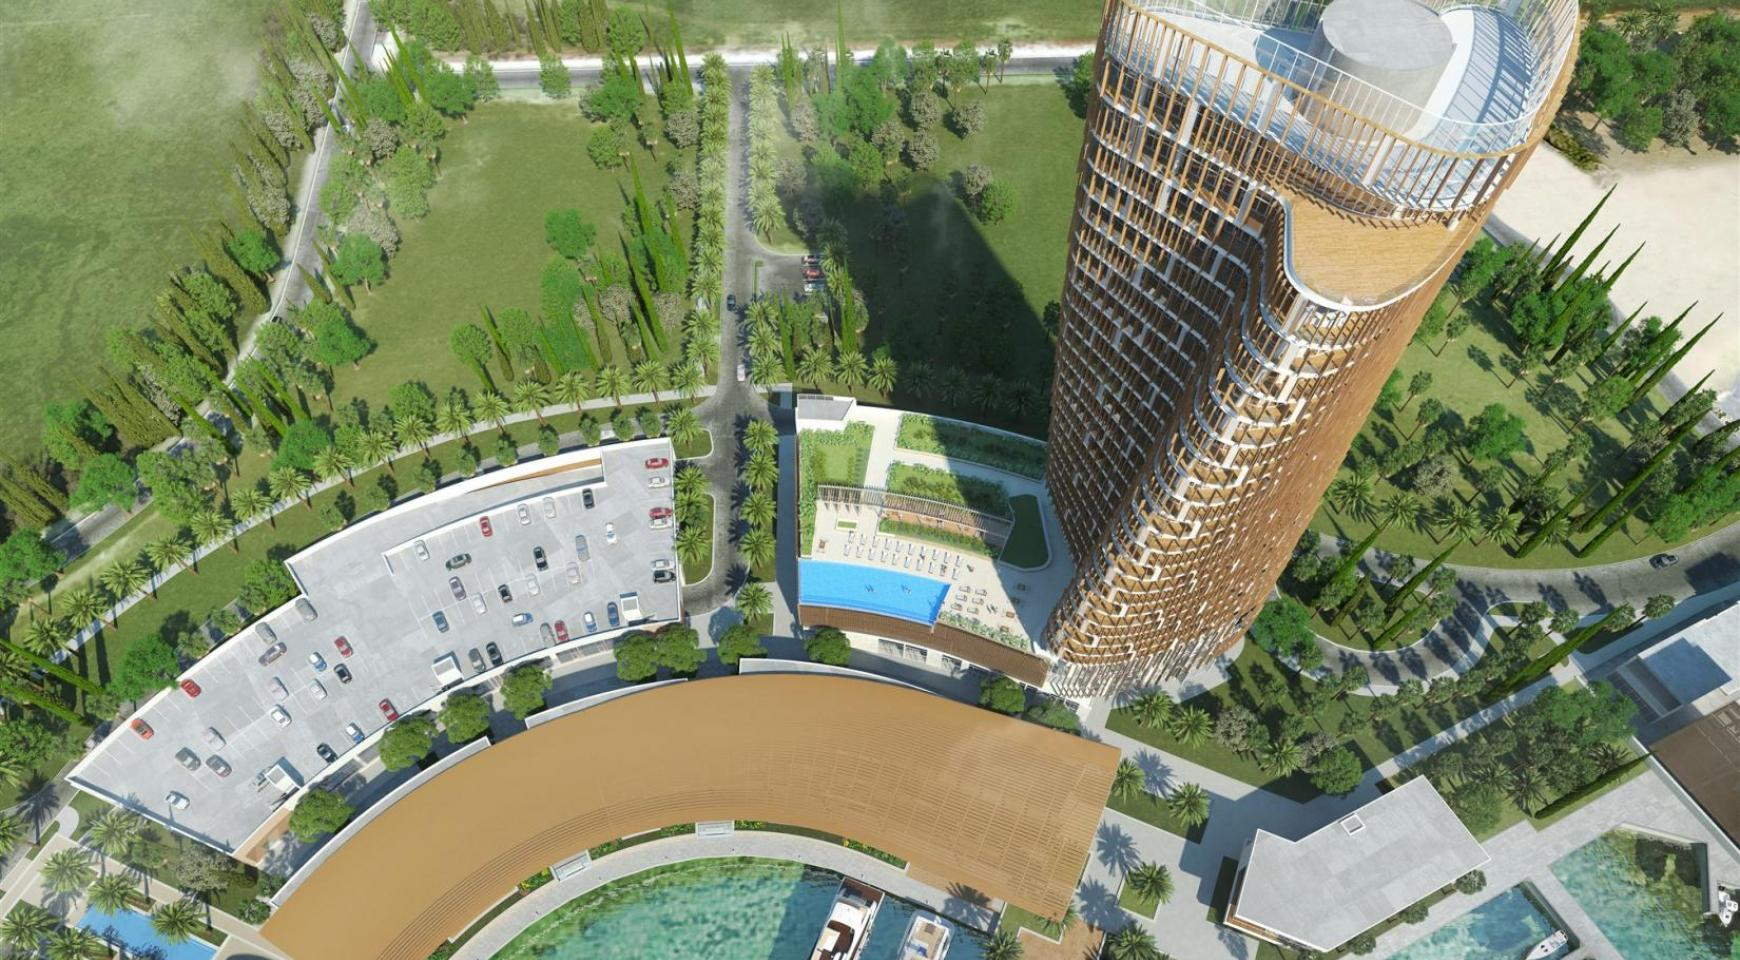 4 Bedroom Apartment in an Exclusive Project by the Sea - 11